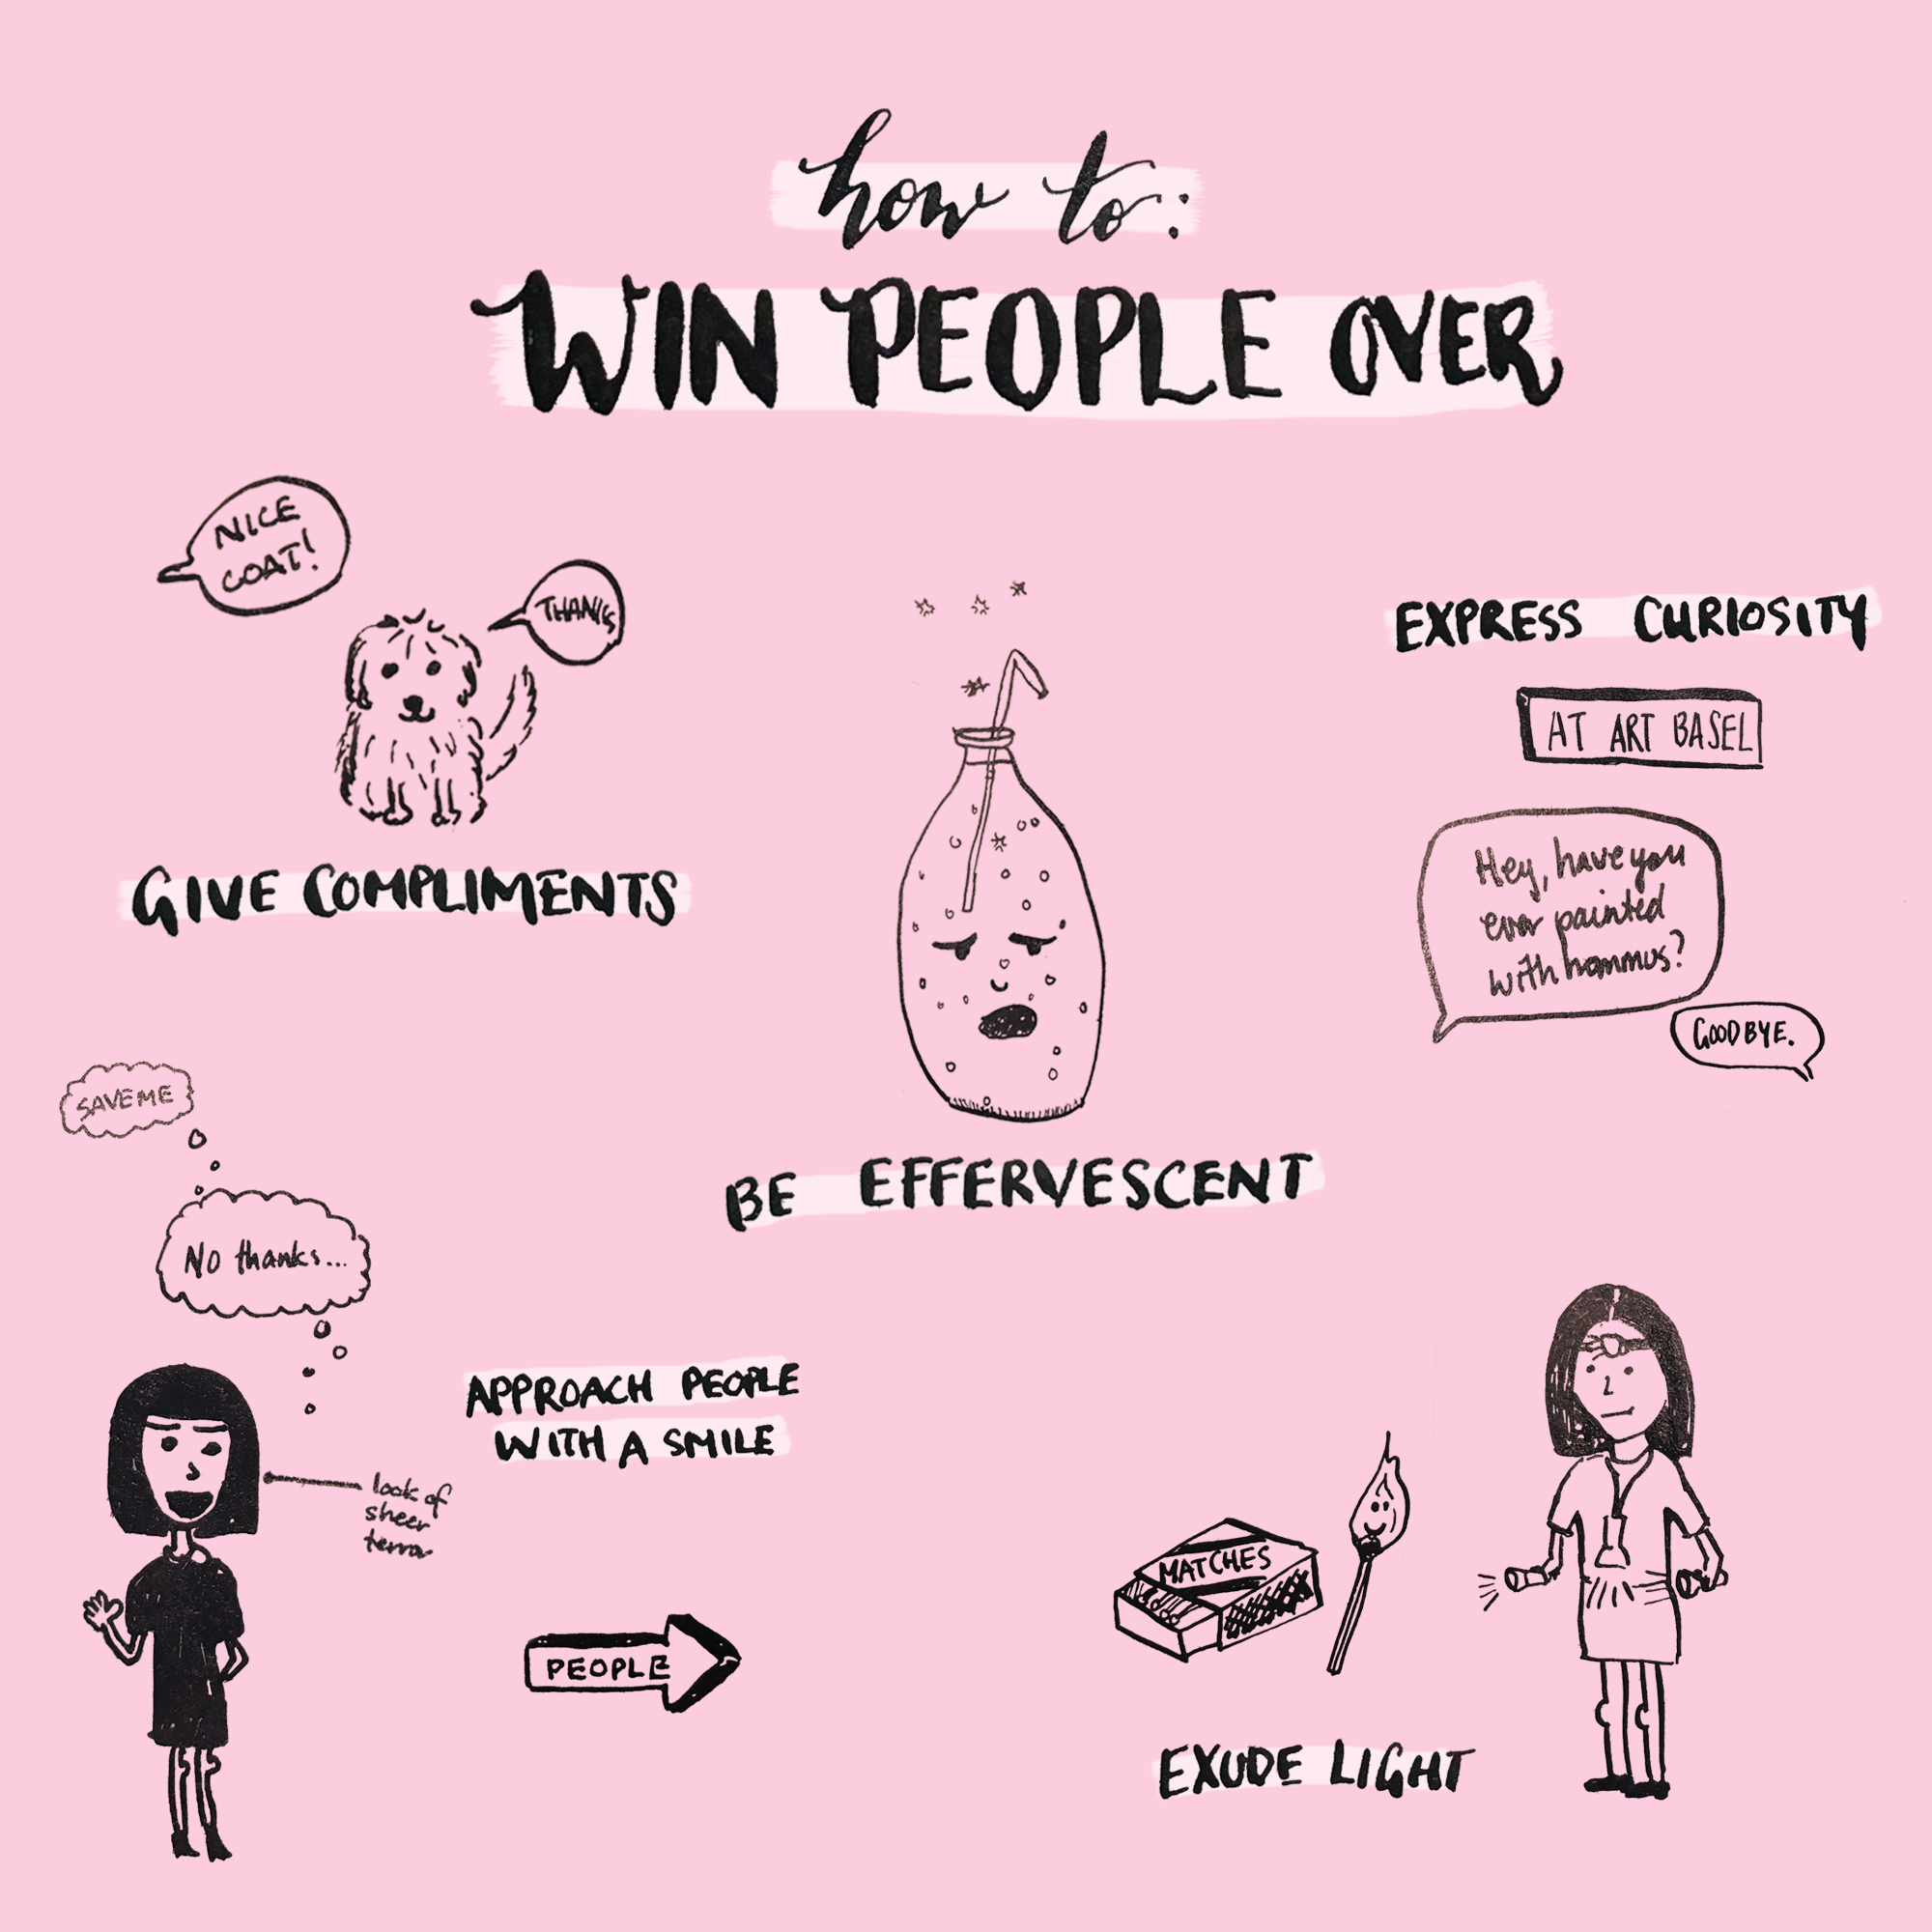 How to Win People Over